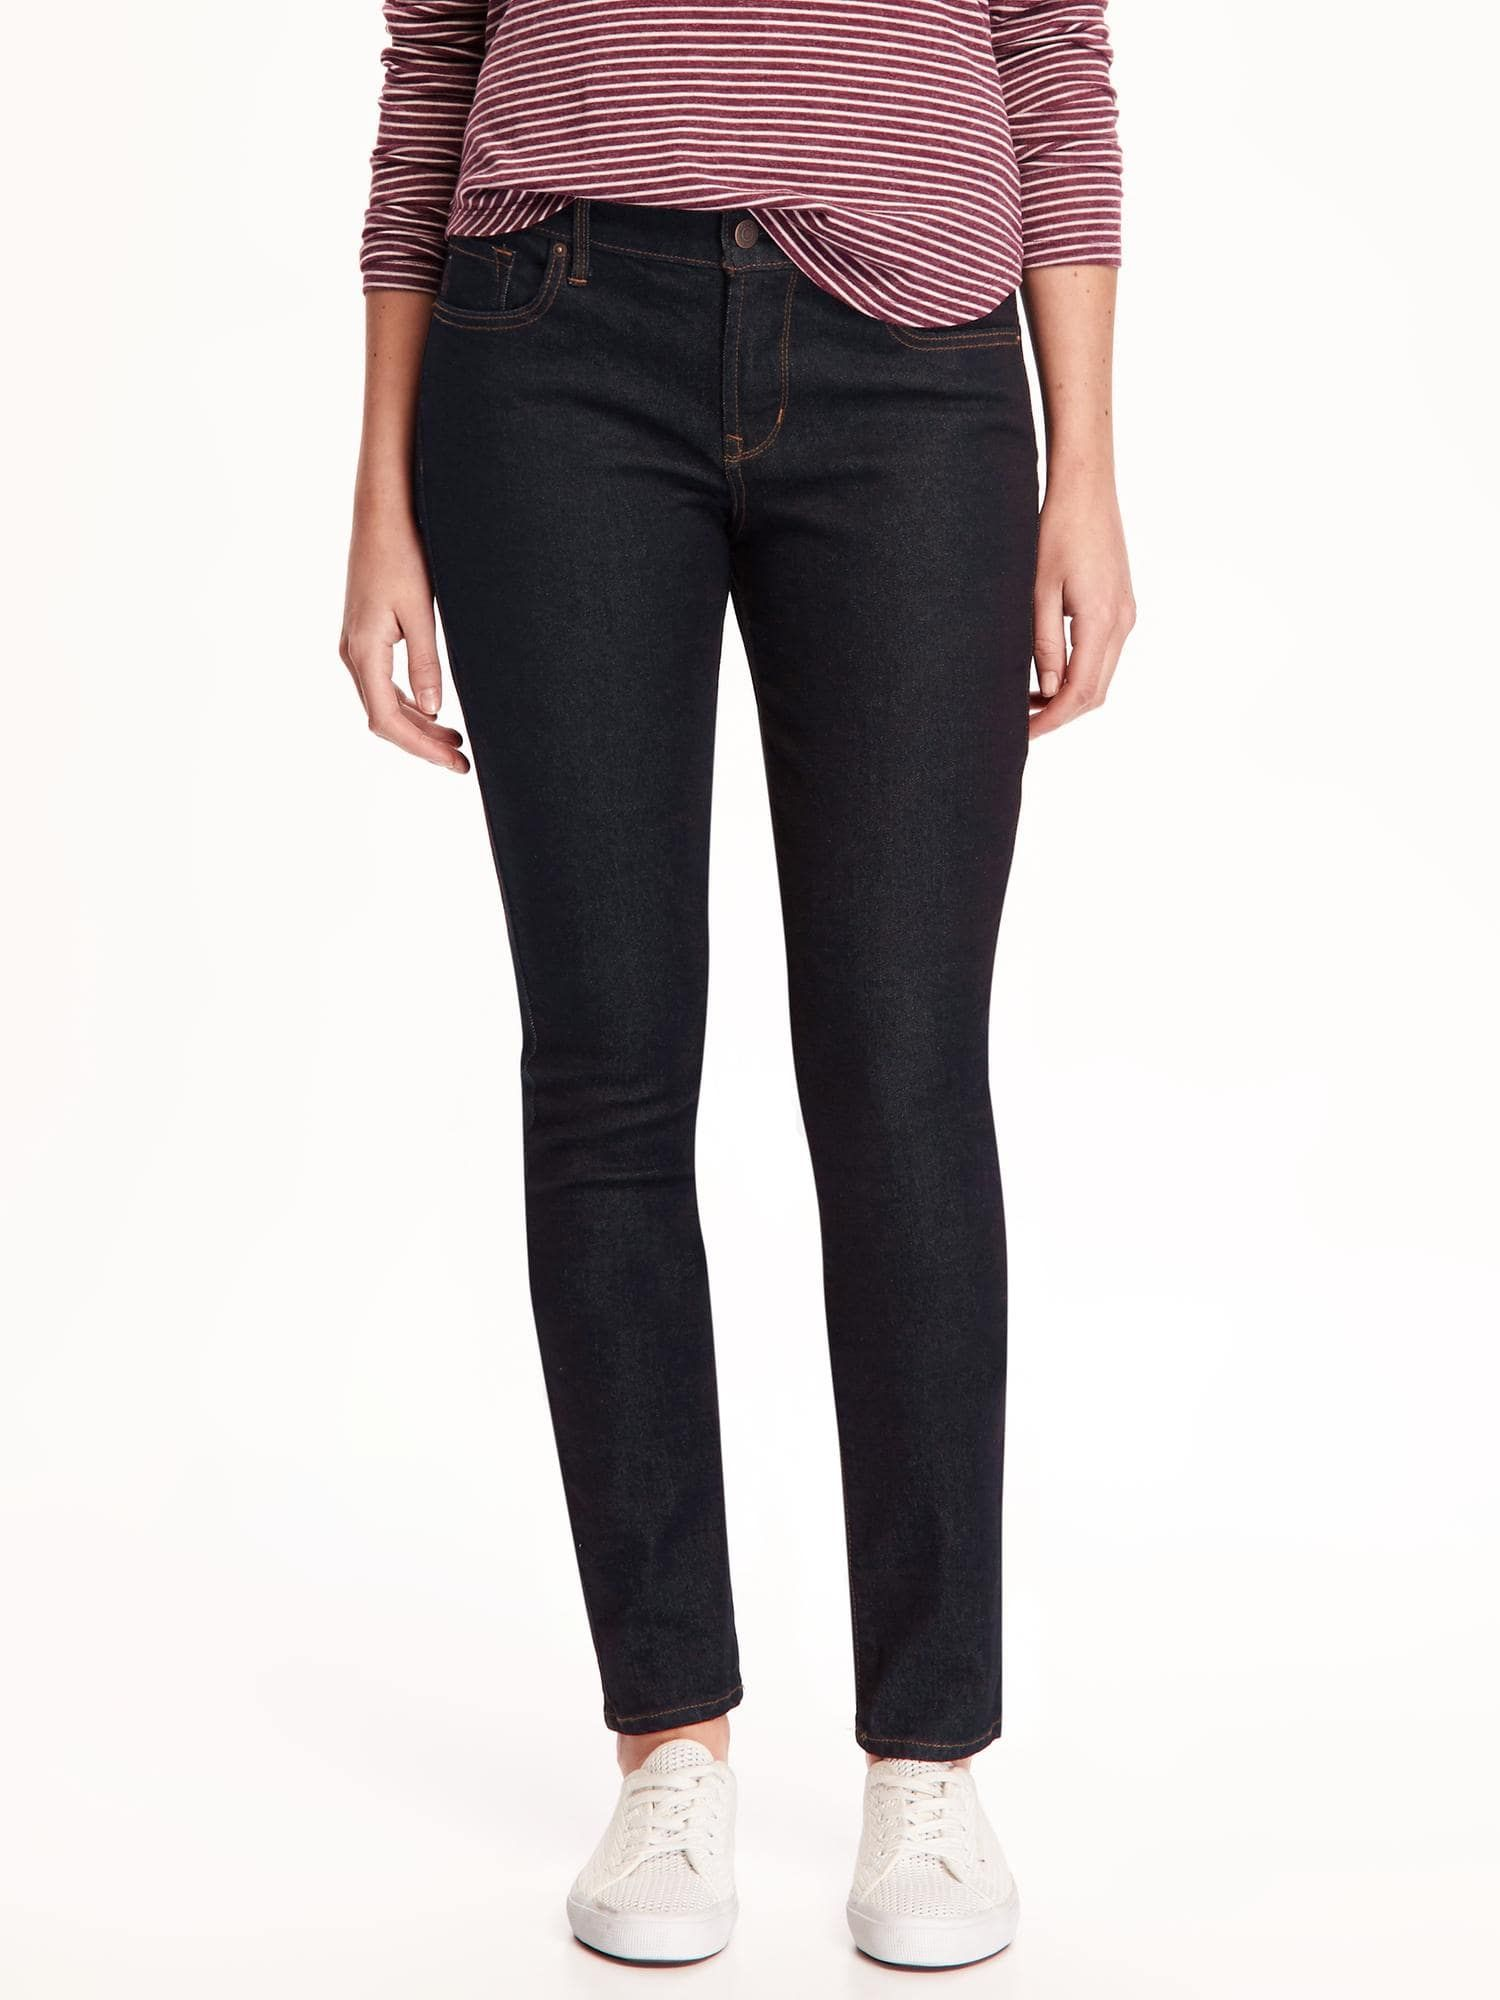 d79c2bde56182 Original Skinny Jeans in darker 'New Rinse'? medium 'Dawn'?   Old Navy ~$27  - 29.99 -- Order online (with coupon) & pick up in store now an option ....  same ...